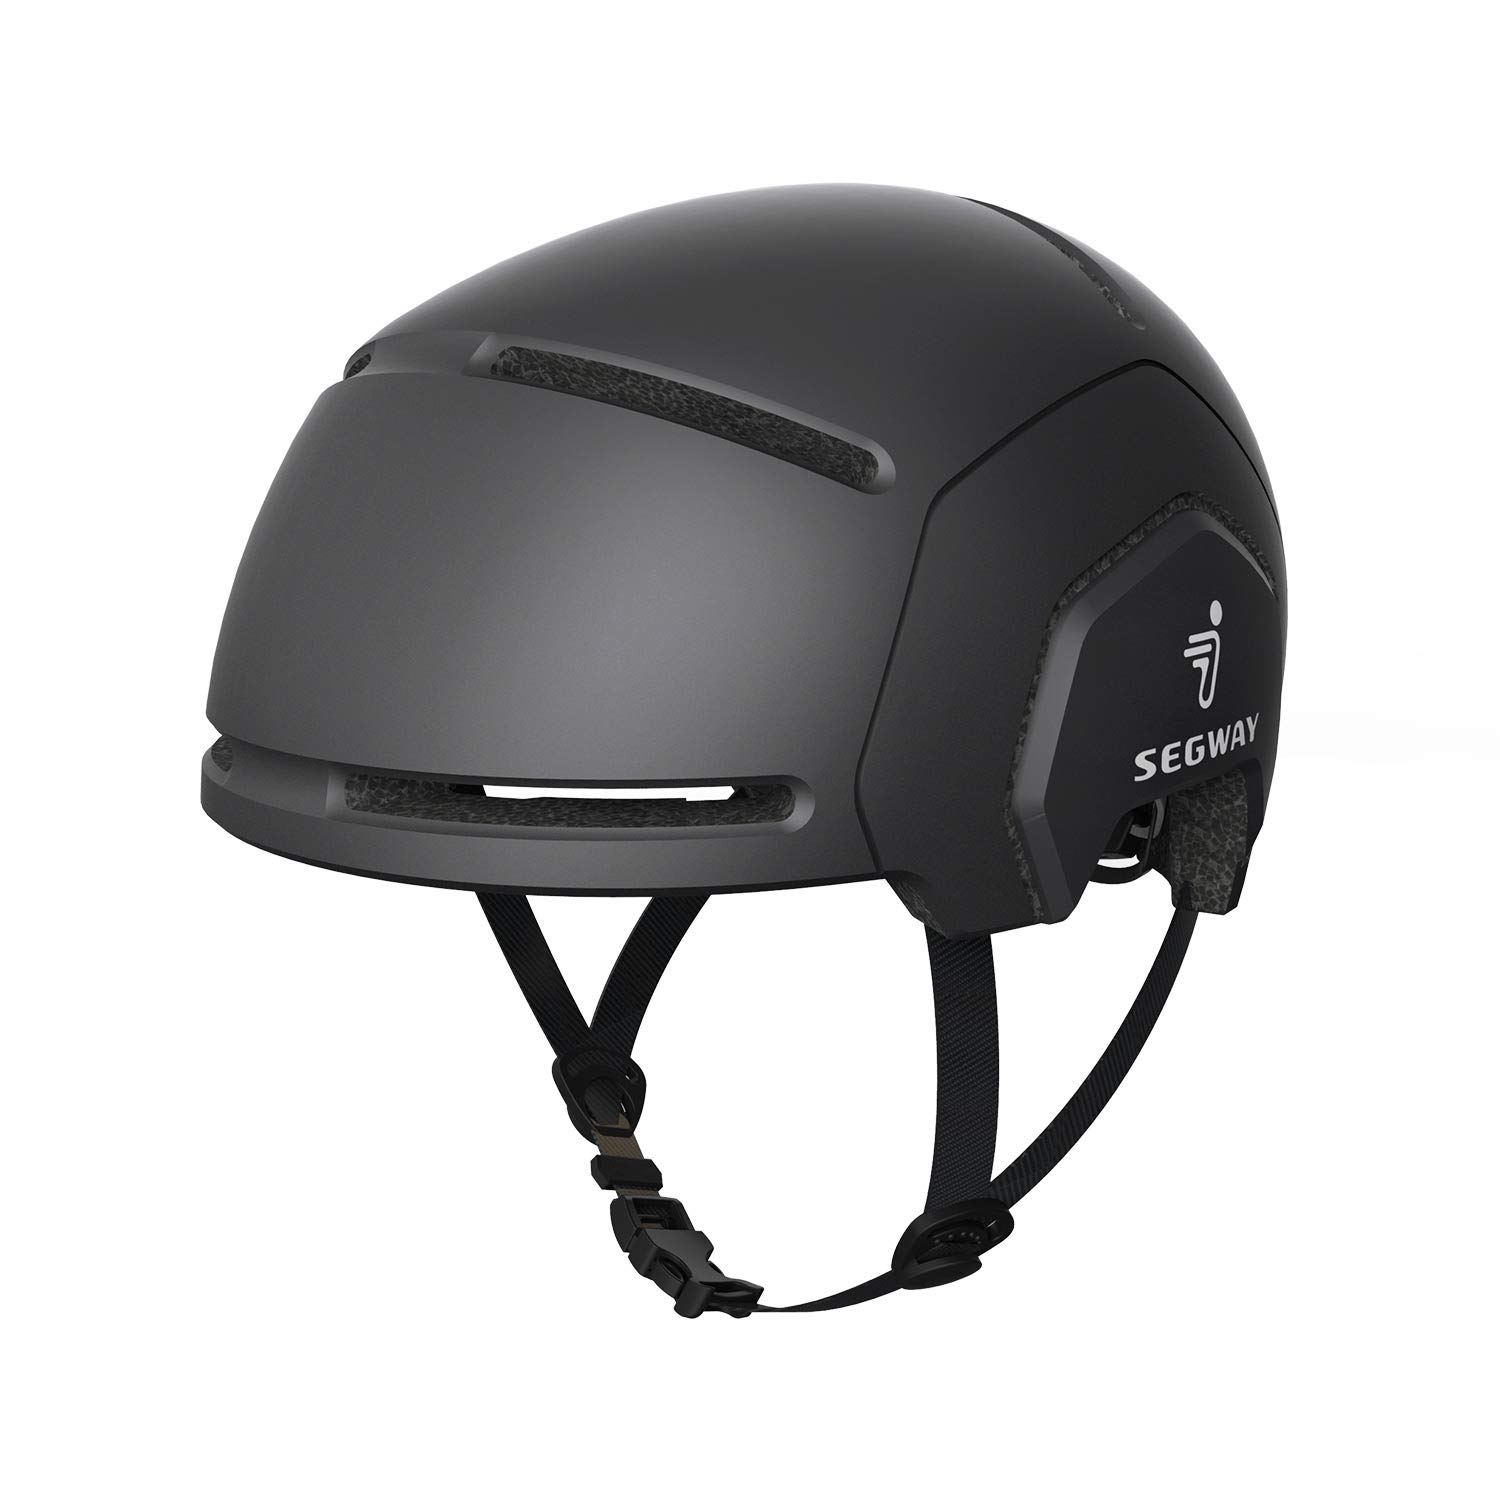 Segway Ninebot Bike Helmet for Bicycles, Scooters, Skates, & GoKart - CE/CPSC Certified, L/XL